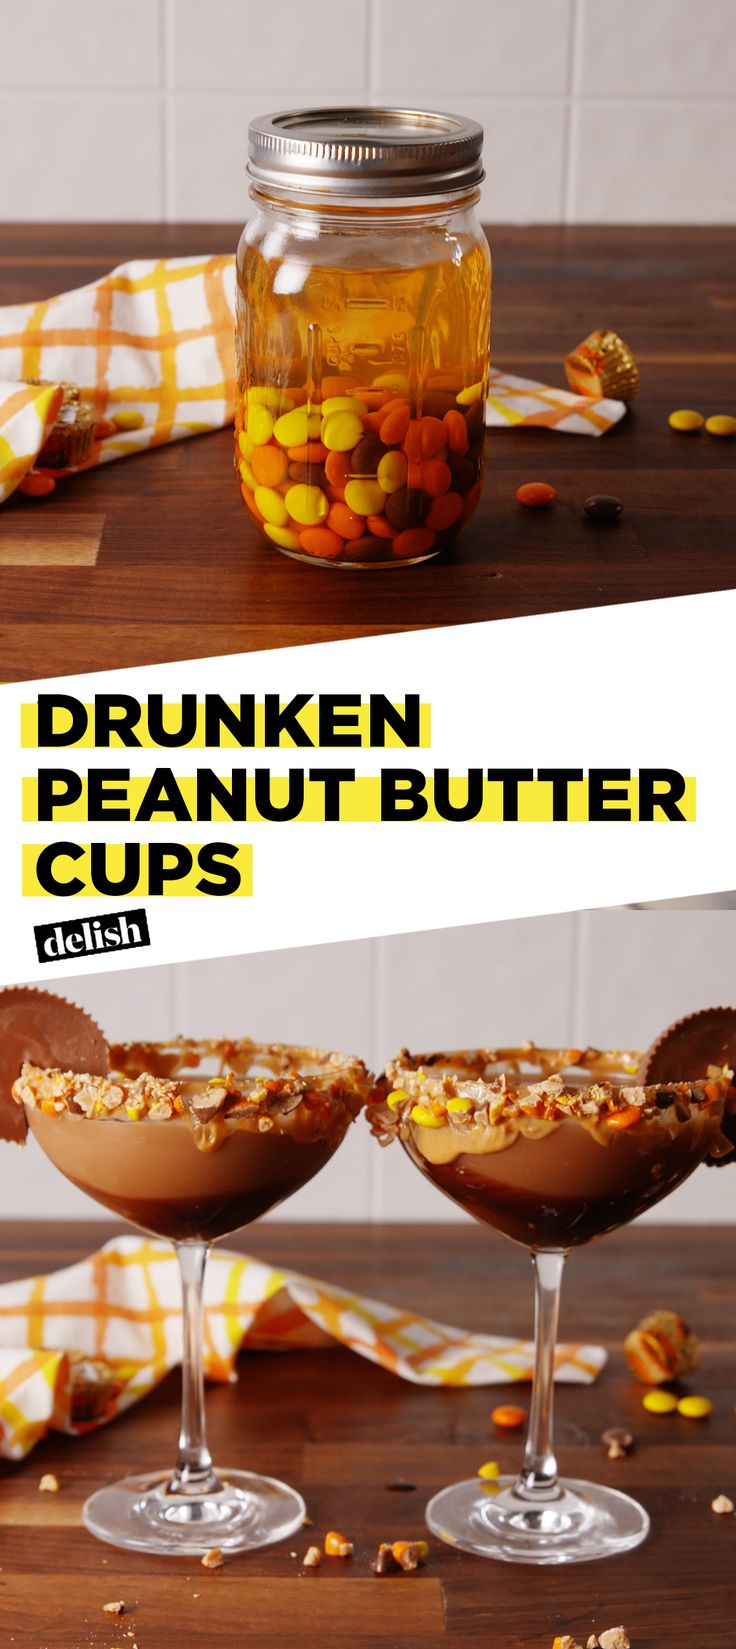 Drunken Peanut Butter Cups are like boozy Reese's. Get the recipe at Delish.com